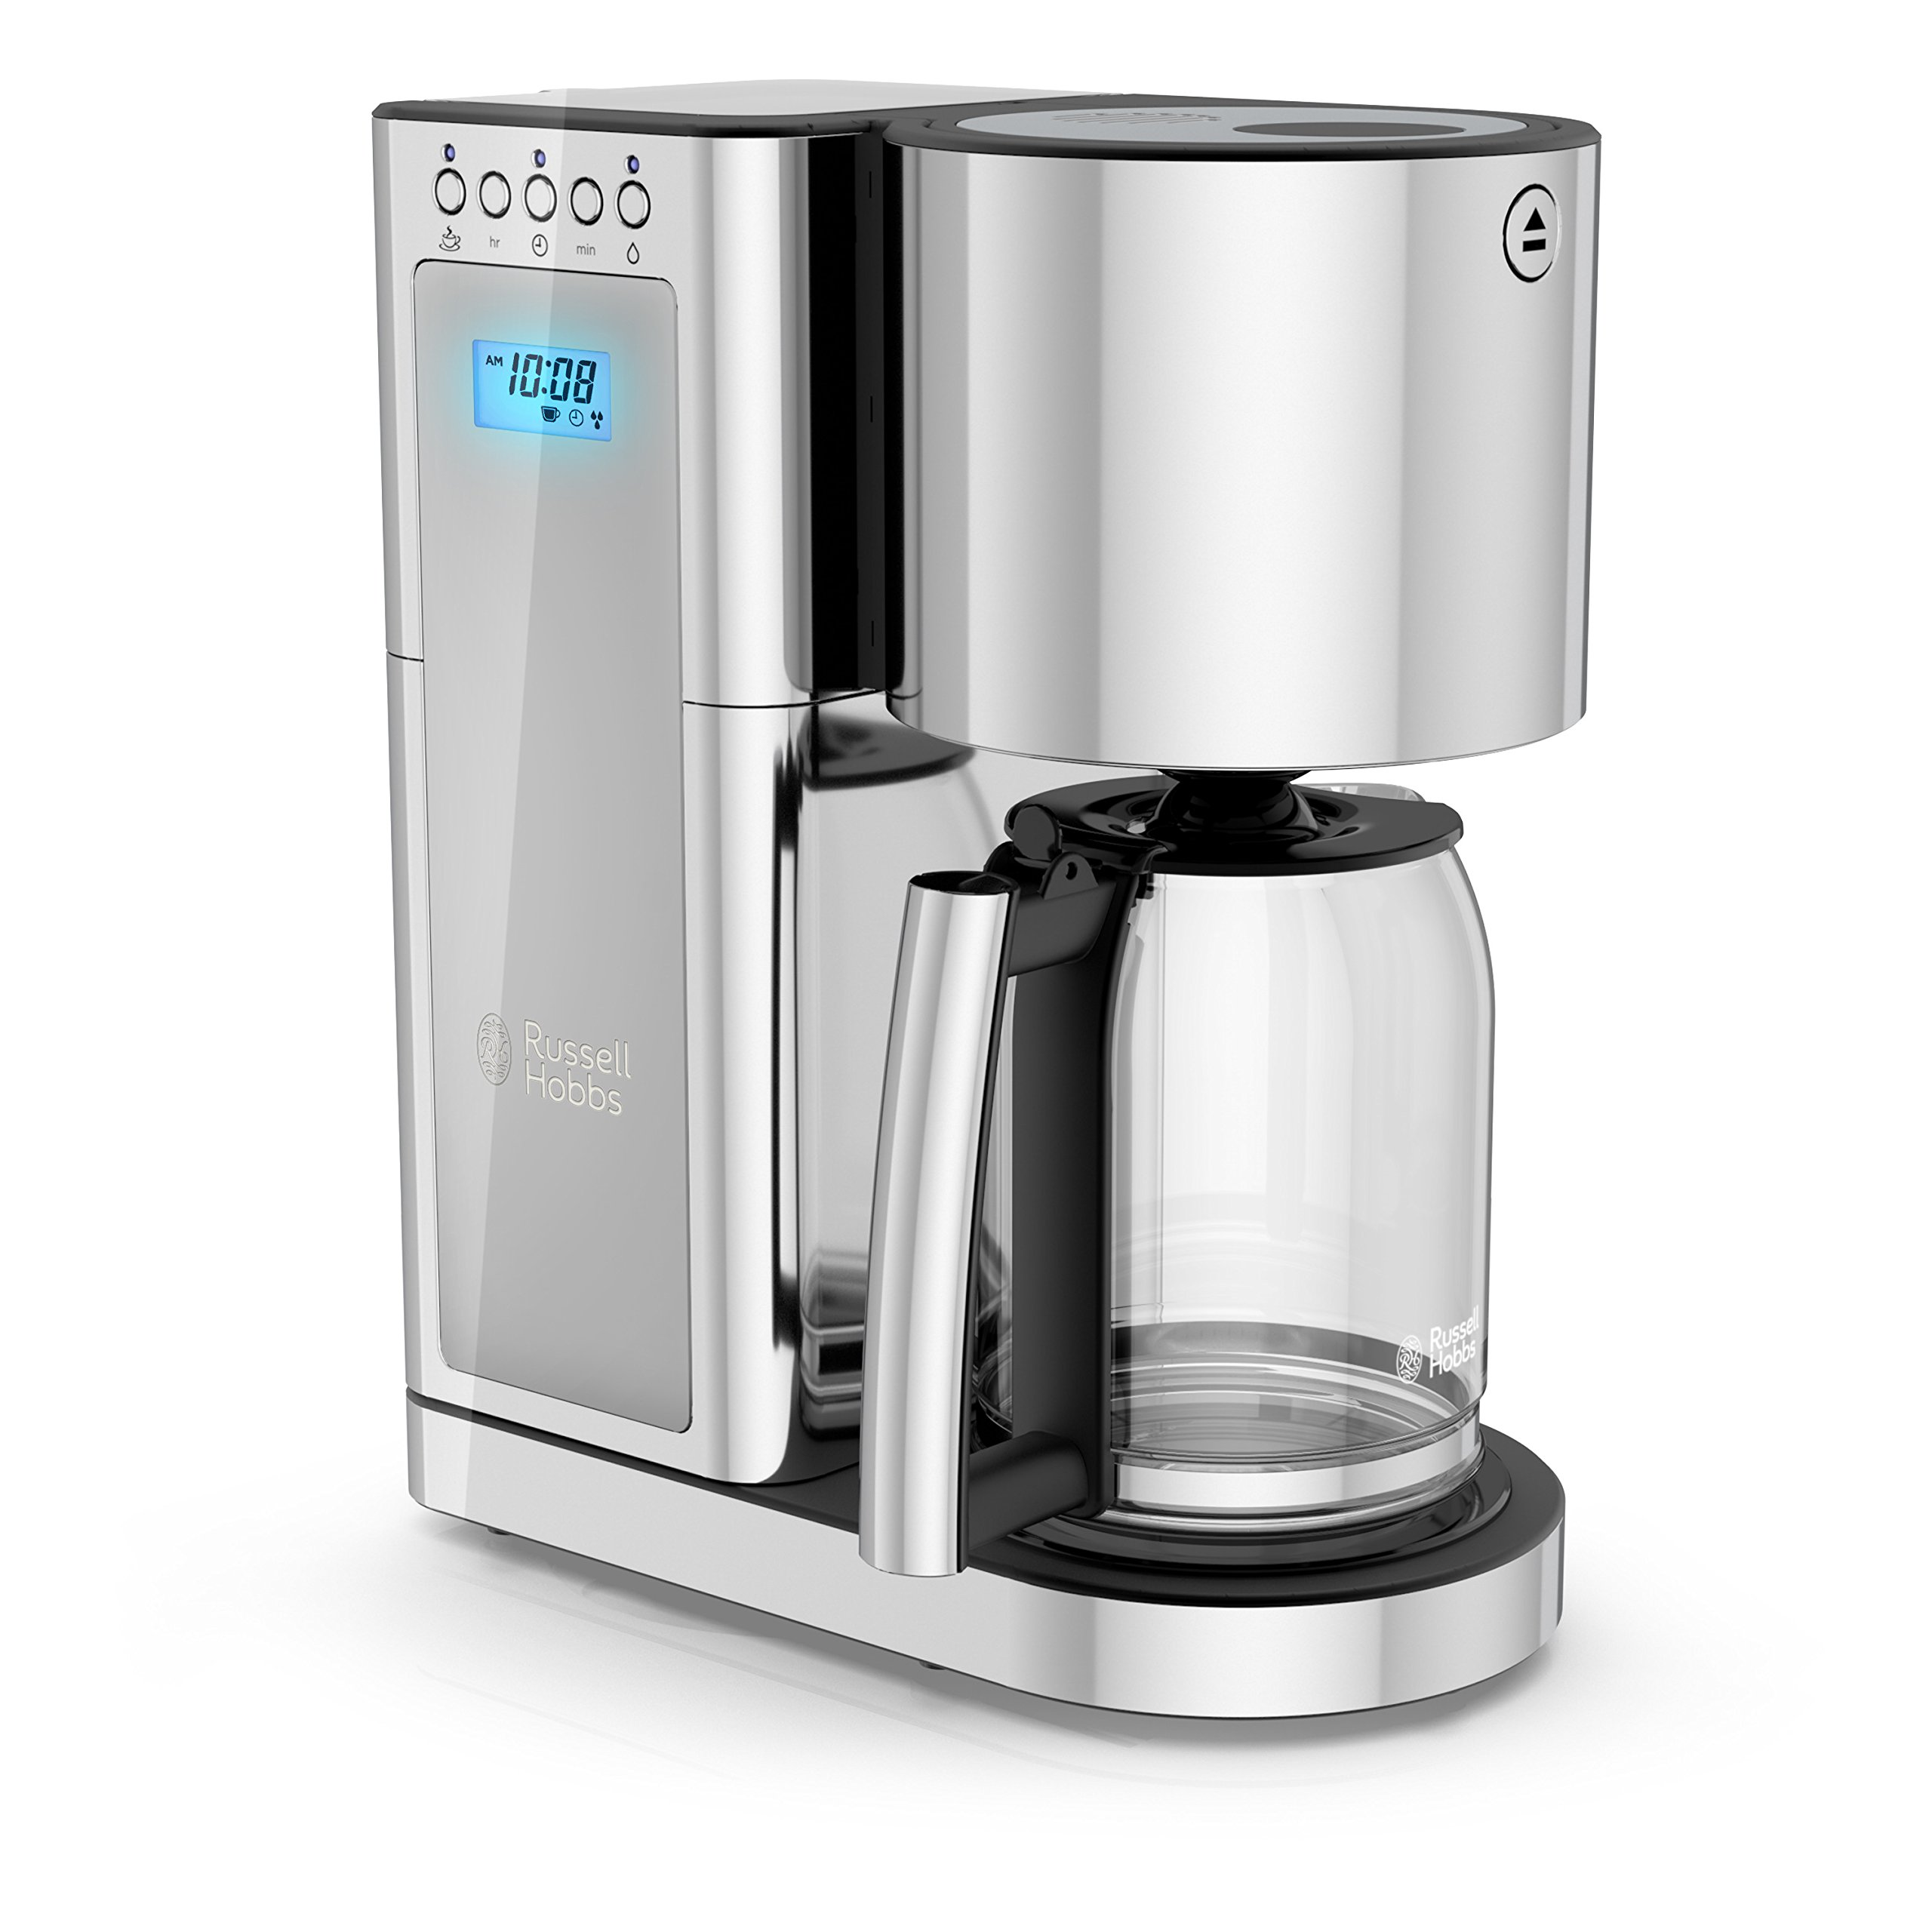 Russell Hobbs Glass Series 8-Cup Coffeemaker, Silver & Stainless Steel, CM8100GYR